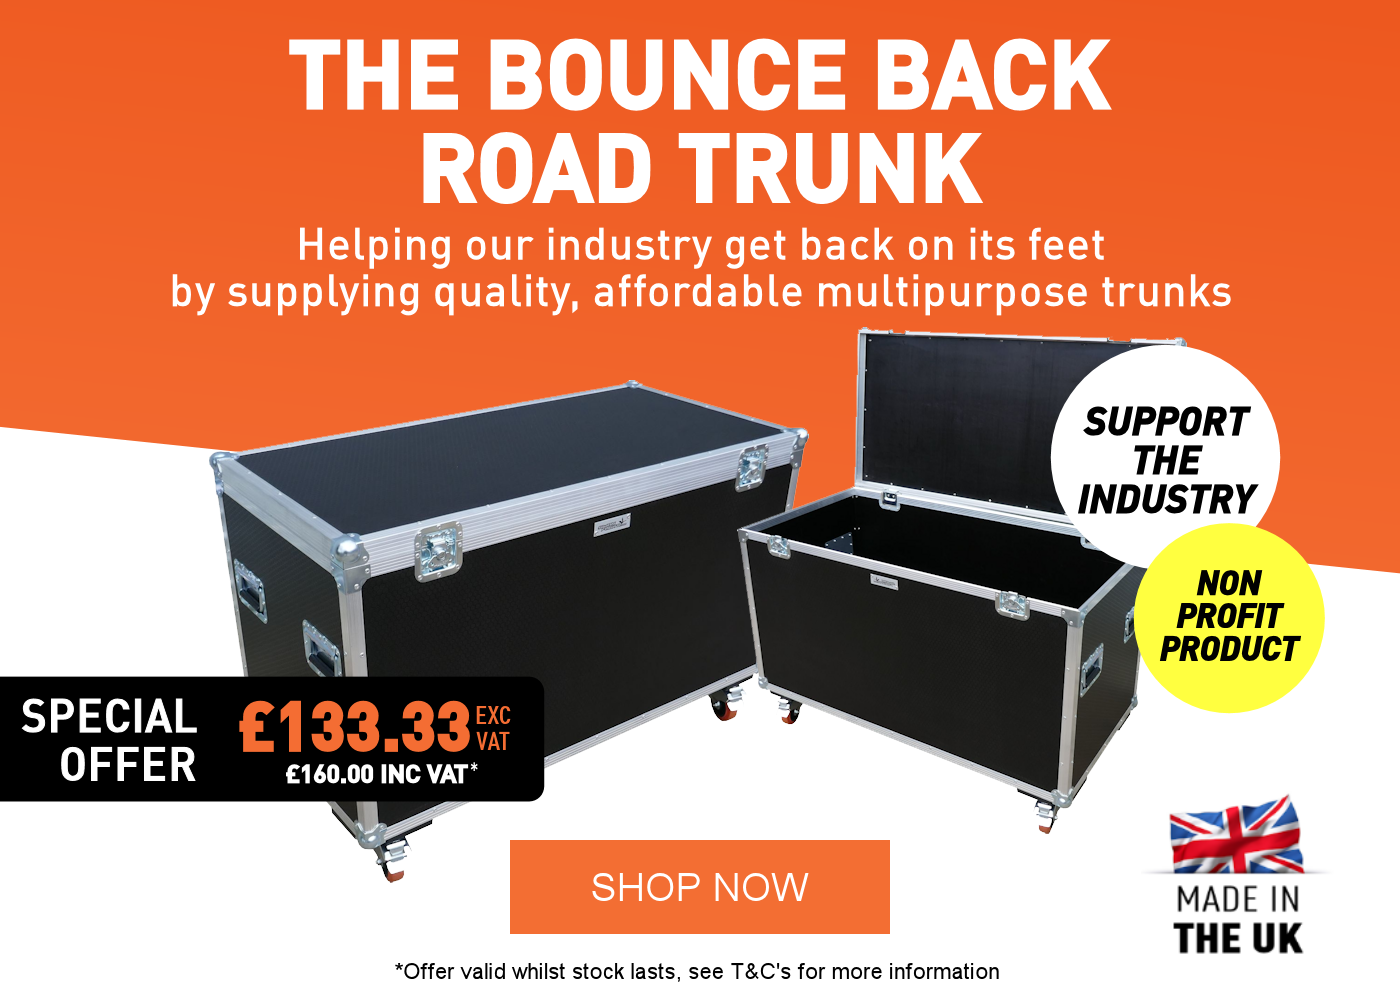 The Bounce Back Trunk